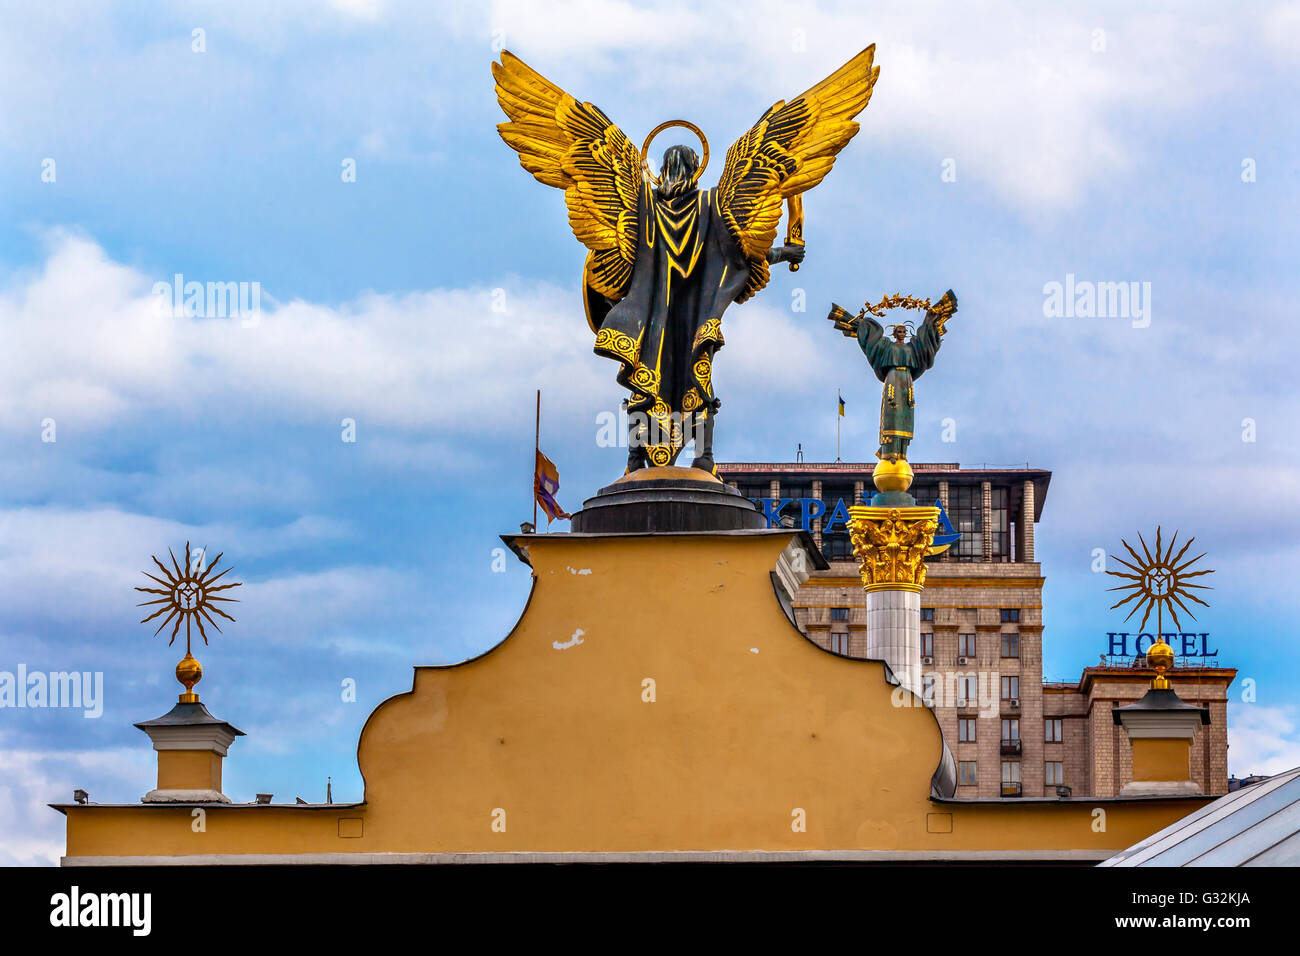 Laches Gate Saint Michael Peasant Girl Slavic Goddess Berehynia Statue Independence Monument, Maidan Kiev Ukraine - Stock Image